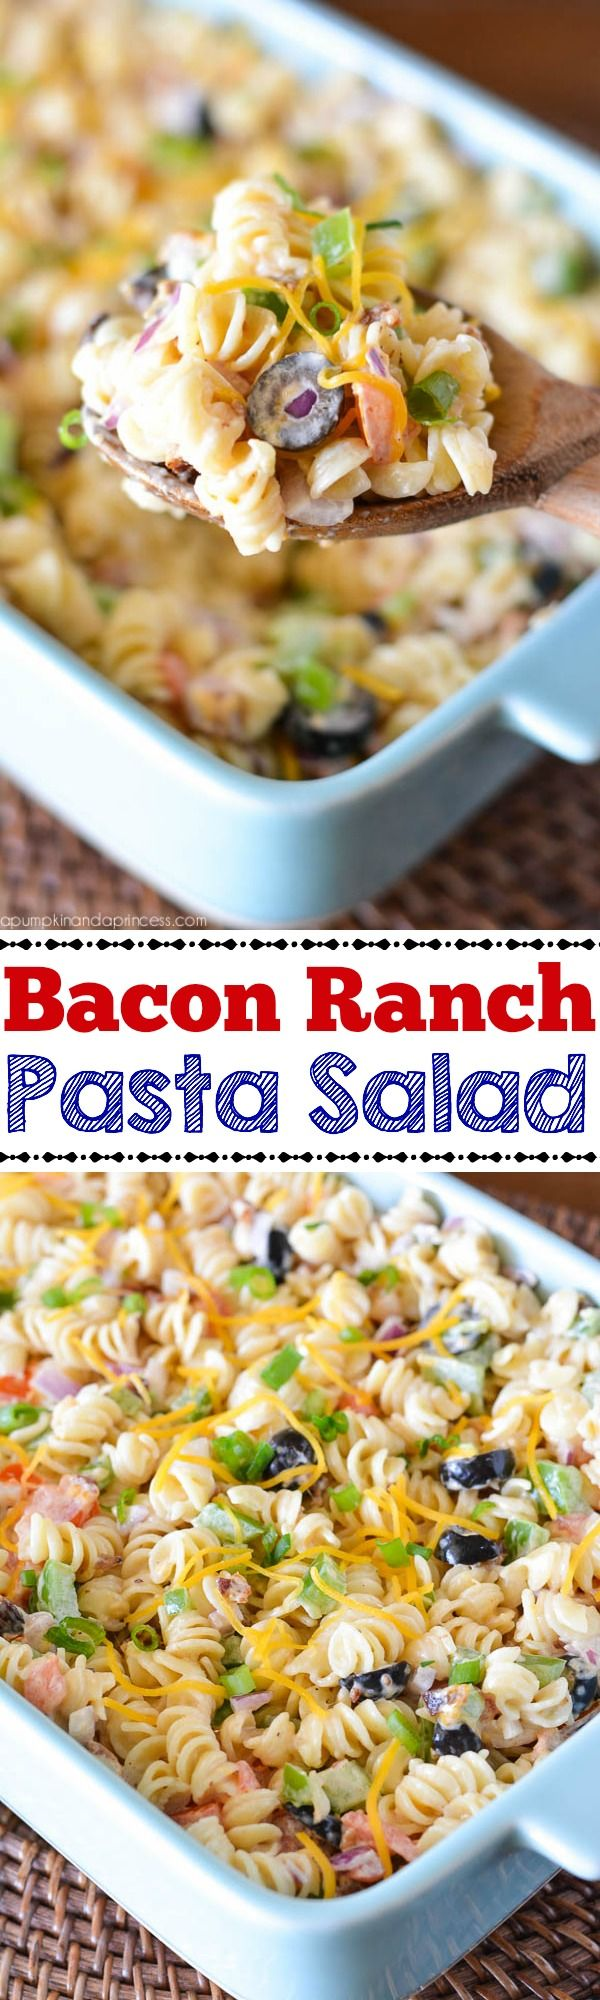 Bacon Ranch Pasta Salad recipe.